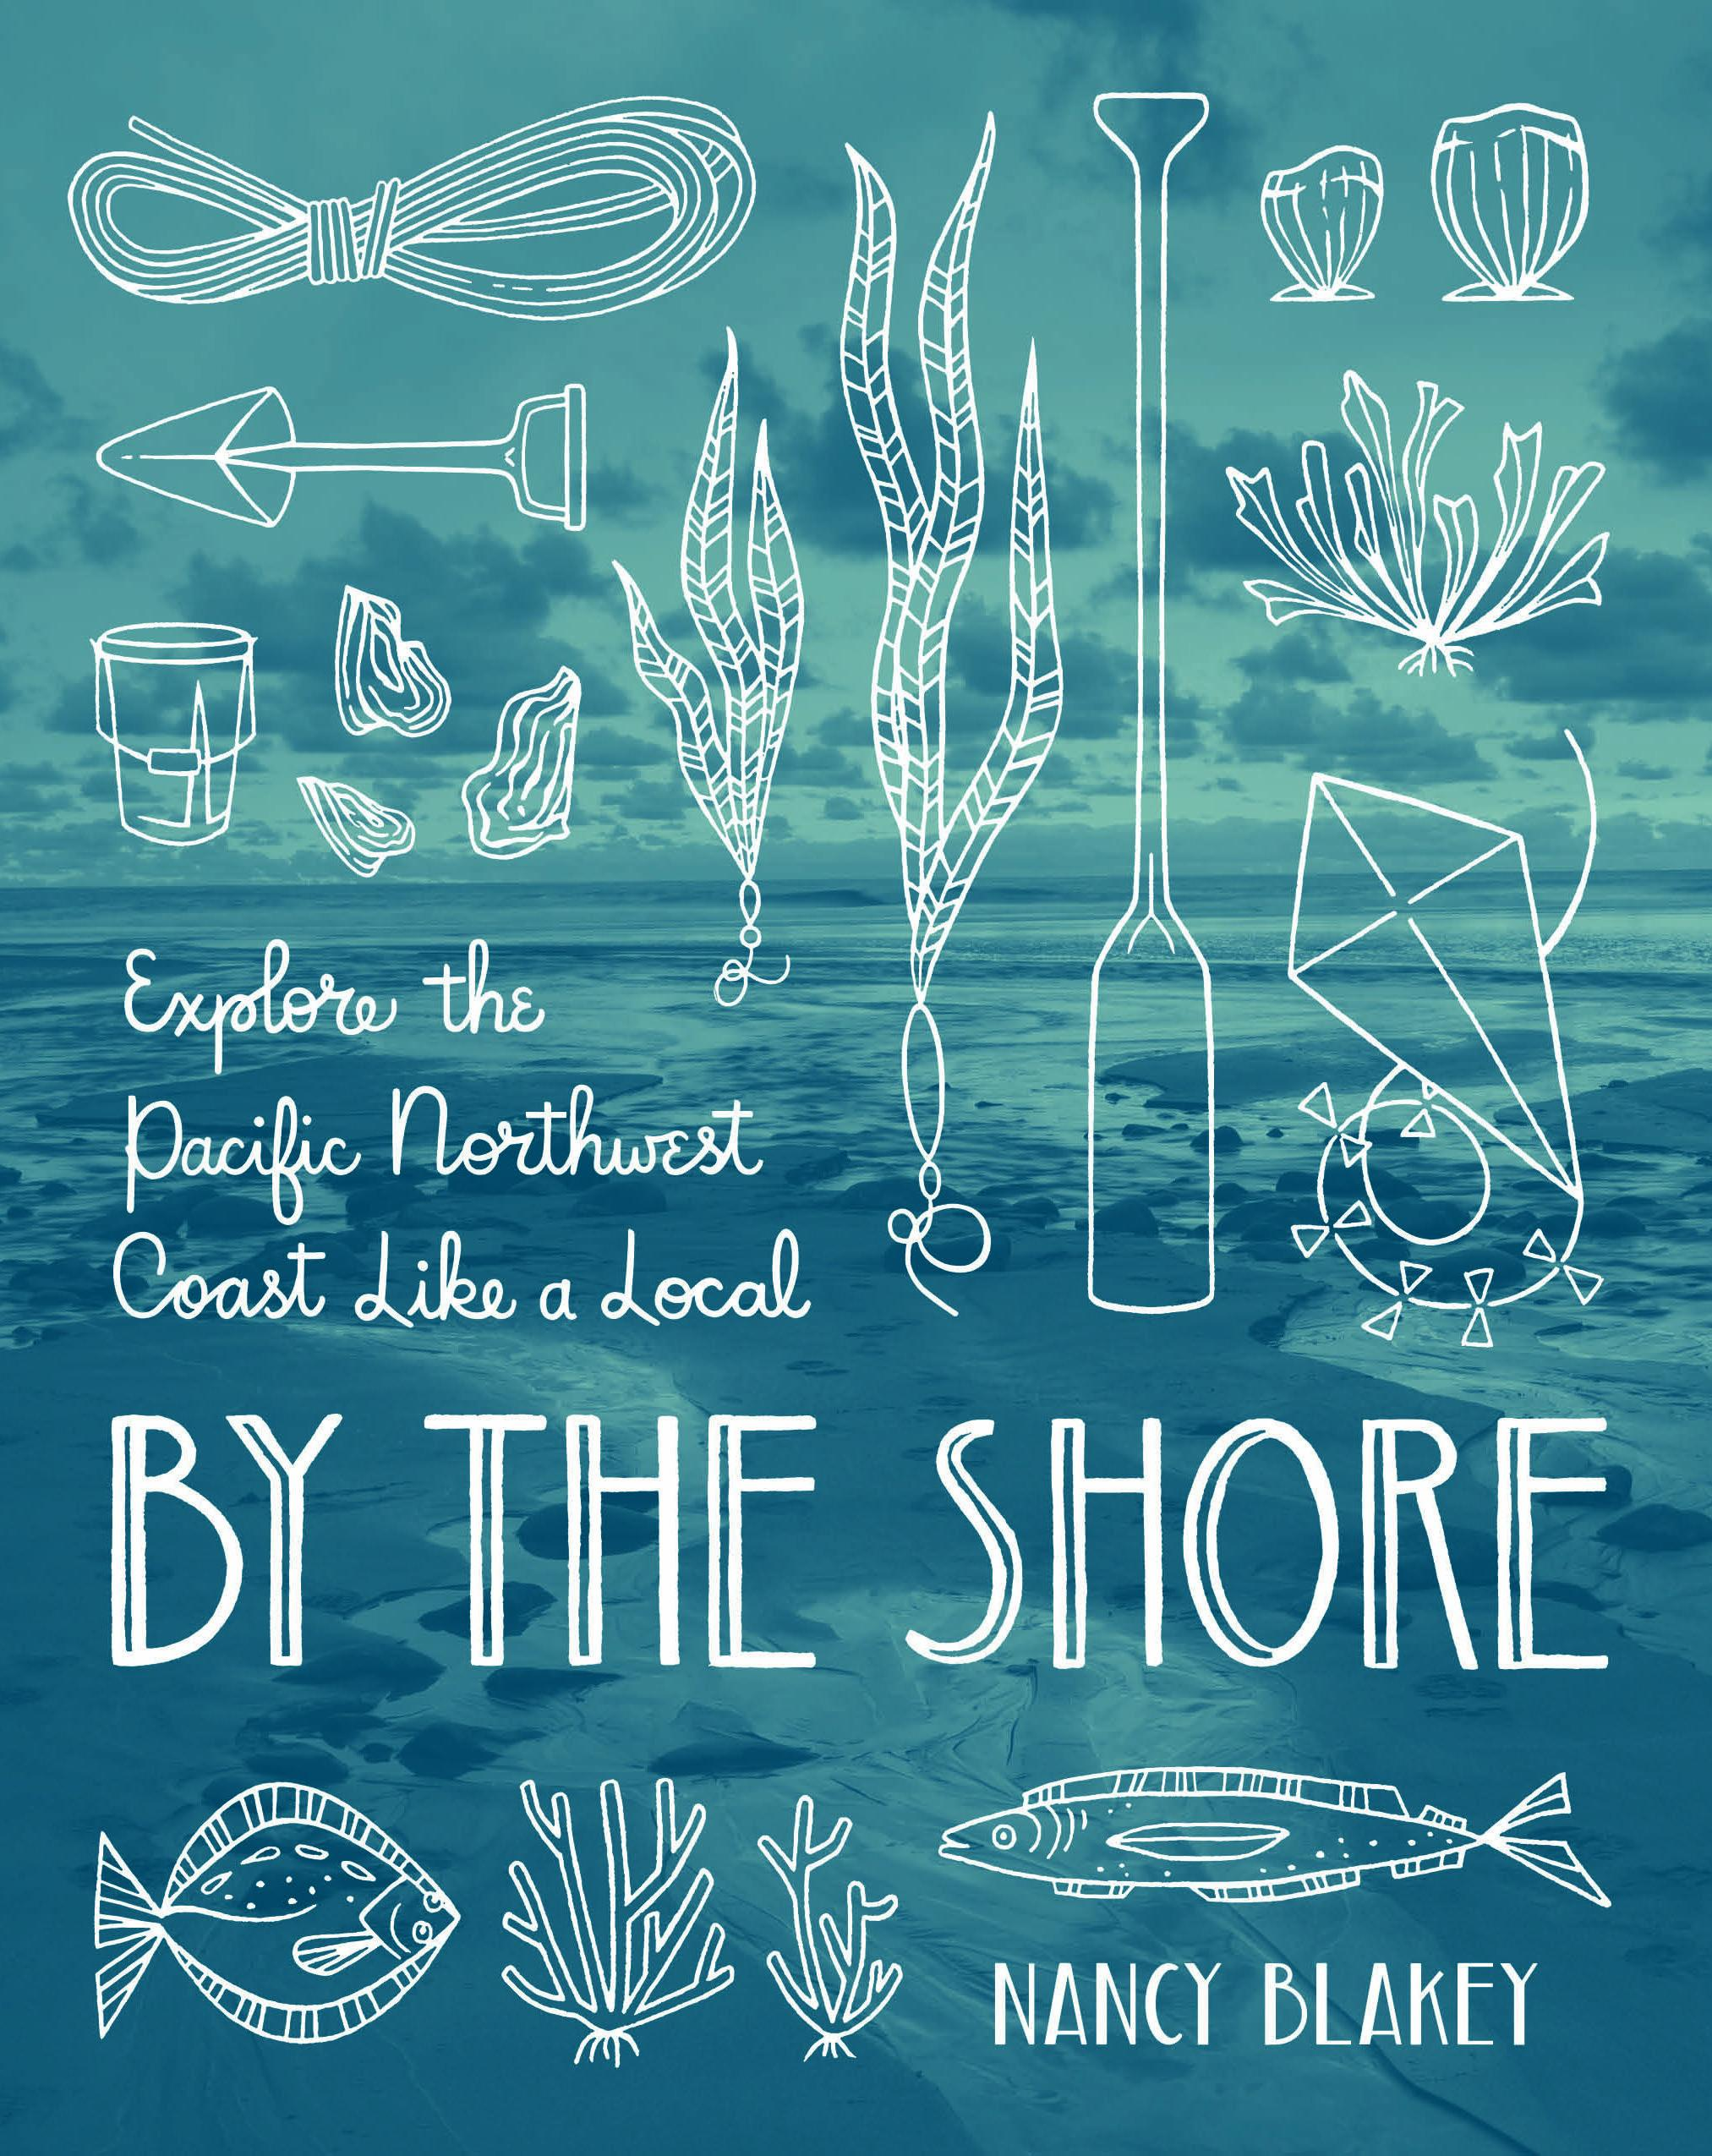 By The Shore: Explore the Pacific Northwest Like a Local by Nancy Blakely. Due out on May 15th from Sasquatch Books, By The Shore comes from Bainbridge Island resident, Nancy Blakely. Organized by seasons, this book is perfect for PNW locals looking for new ways to immerse themselves in coastal life – from beach hikes and road trips to festivals and events. Blakely dives into tide pool exploration, kite festivals, meteor shower watching, tree house and yurt rentals, beach camping trips, squid jigging, full-moon kayak paddles and night bike rides. (Image: Sasquatch Books)